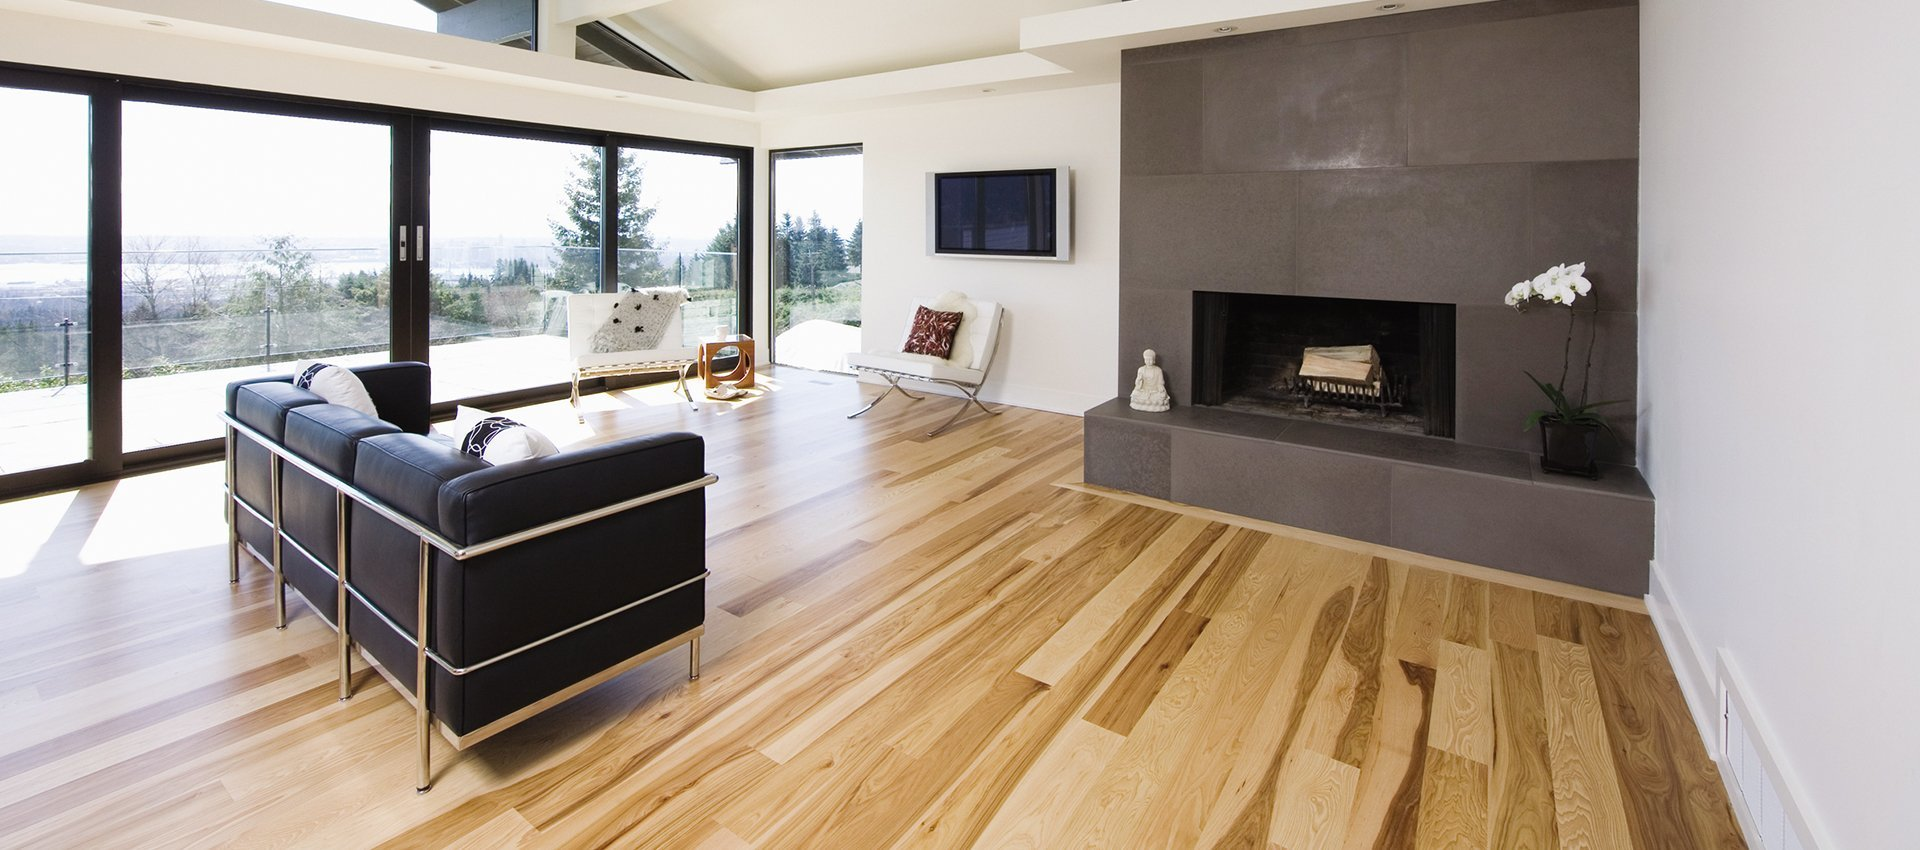 wooden flooring in living room